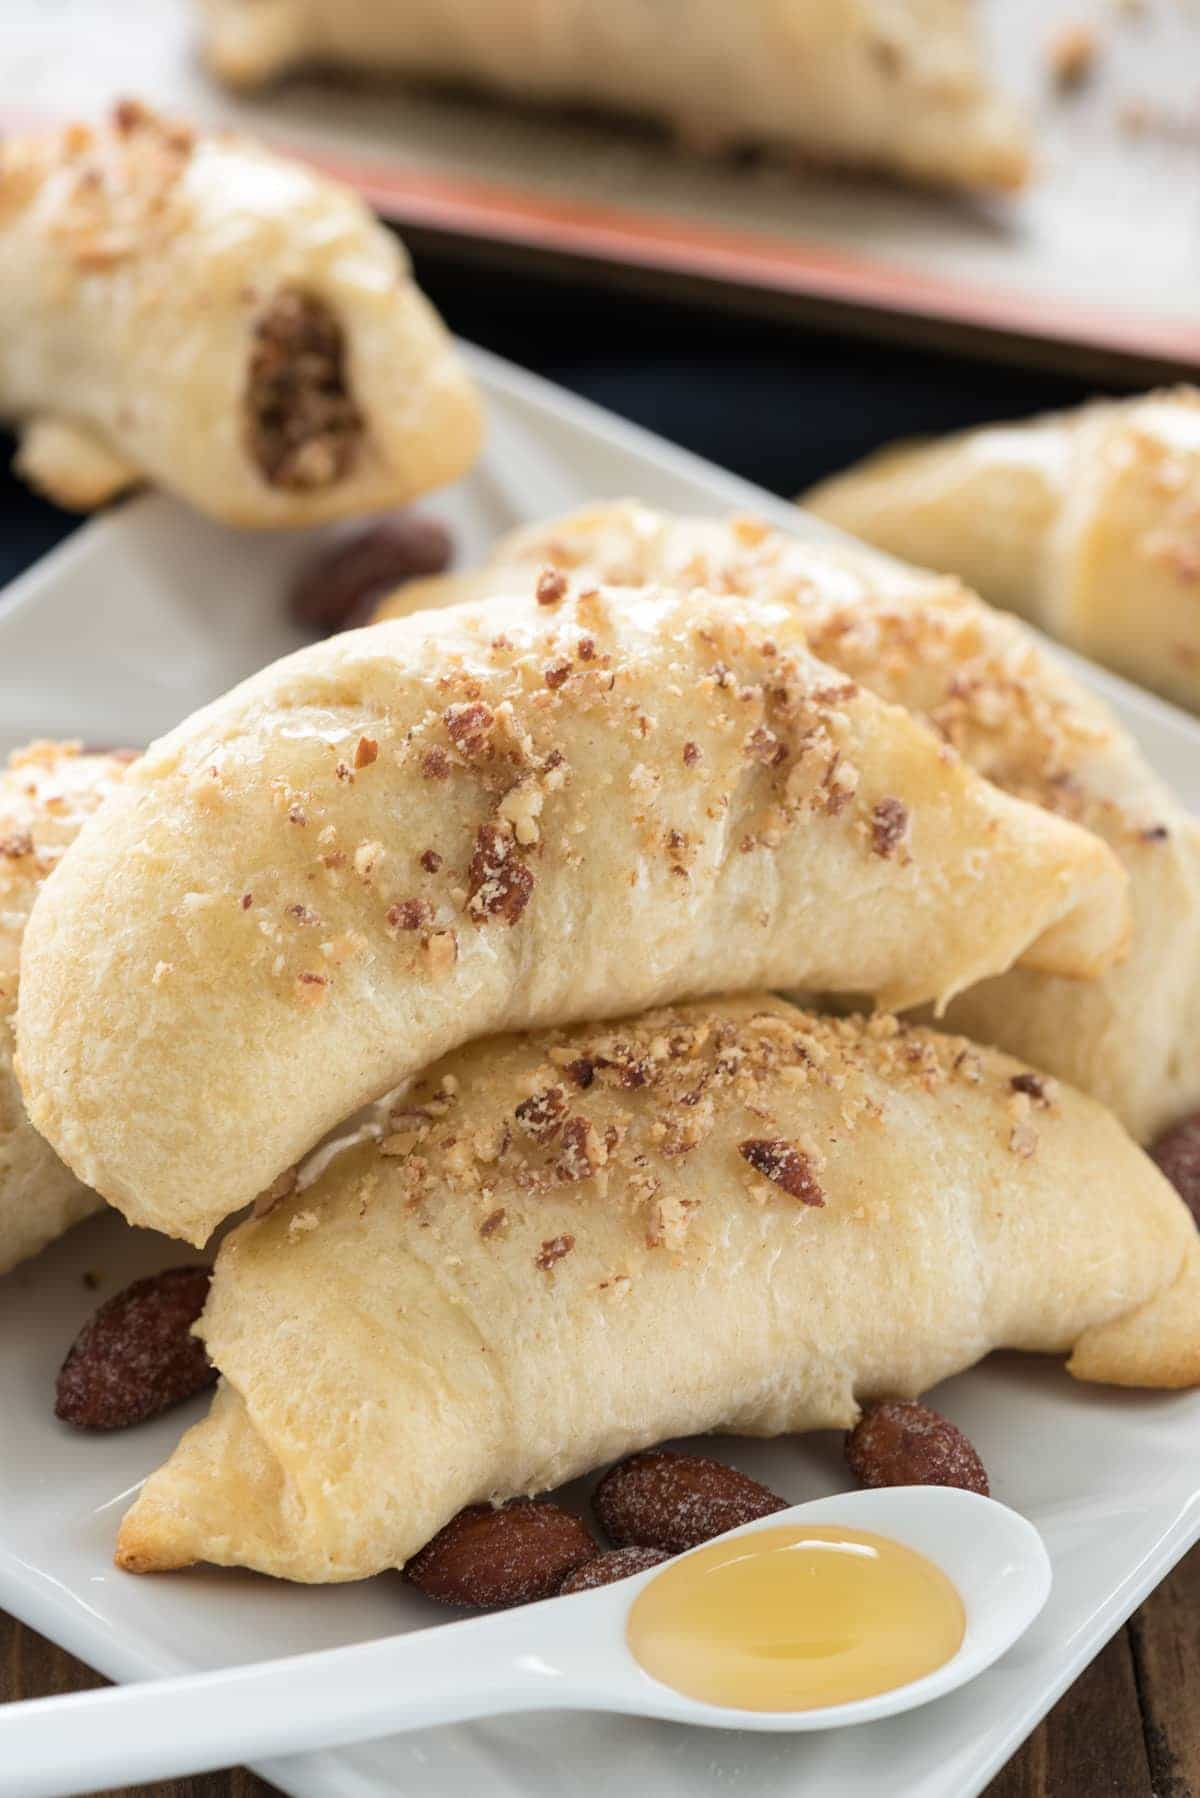 Almond Baklava Croissants Recipe - an easy brunch recipe with only 4 ingredients.